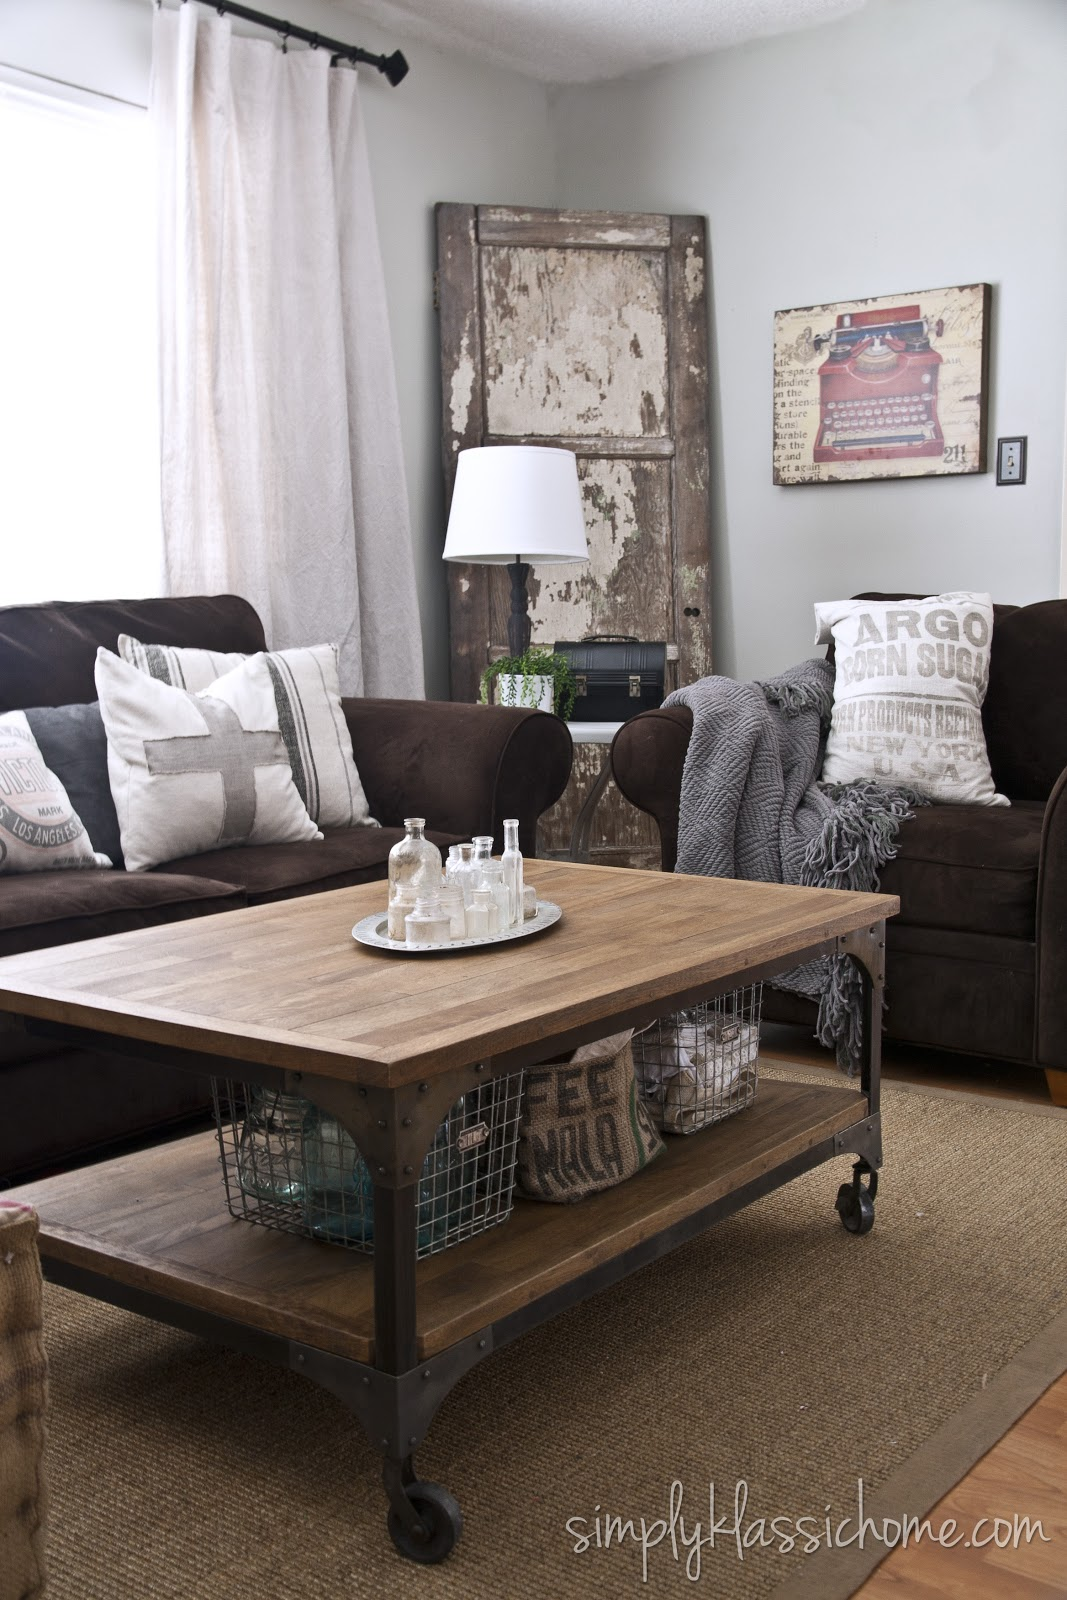 The Scoop 154 Pillows and Living rooms